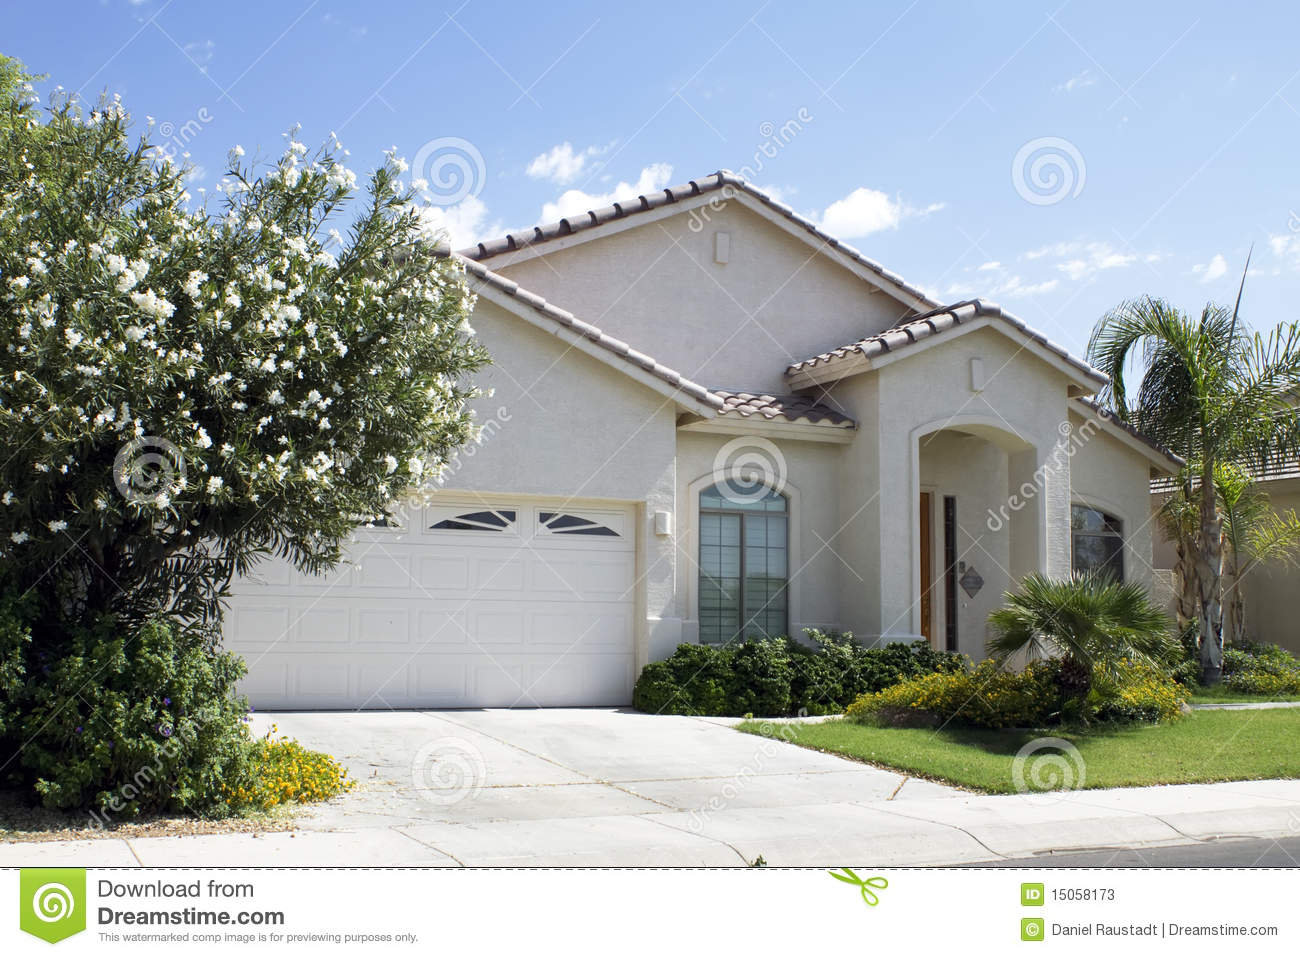 New modern classic home stock photos image 15058173 for New classic homes